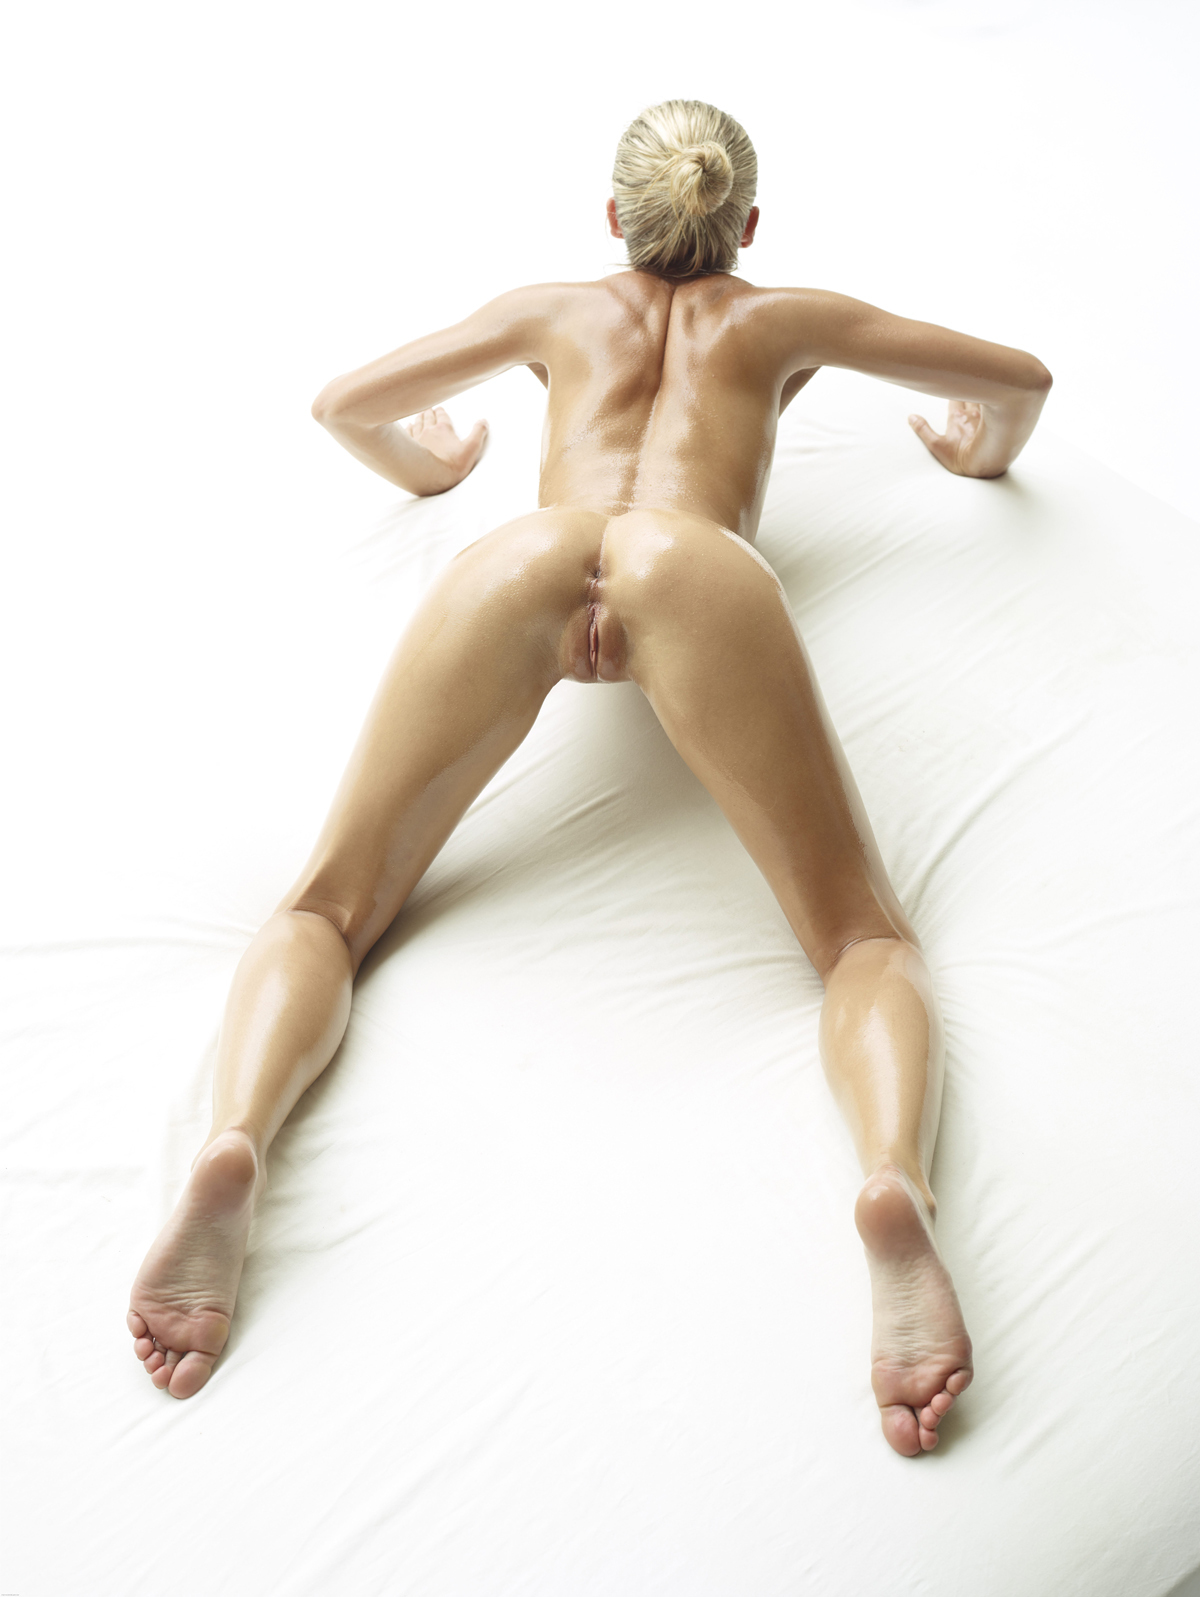 Oiled Beauty Darina L Sex Show - picture 10